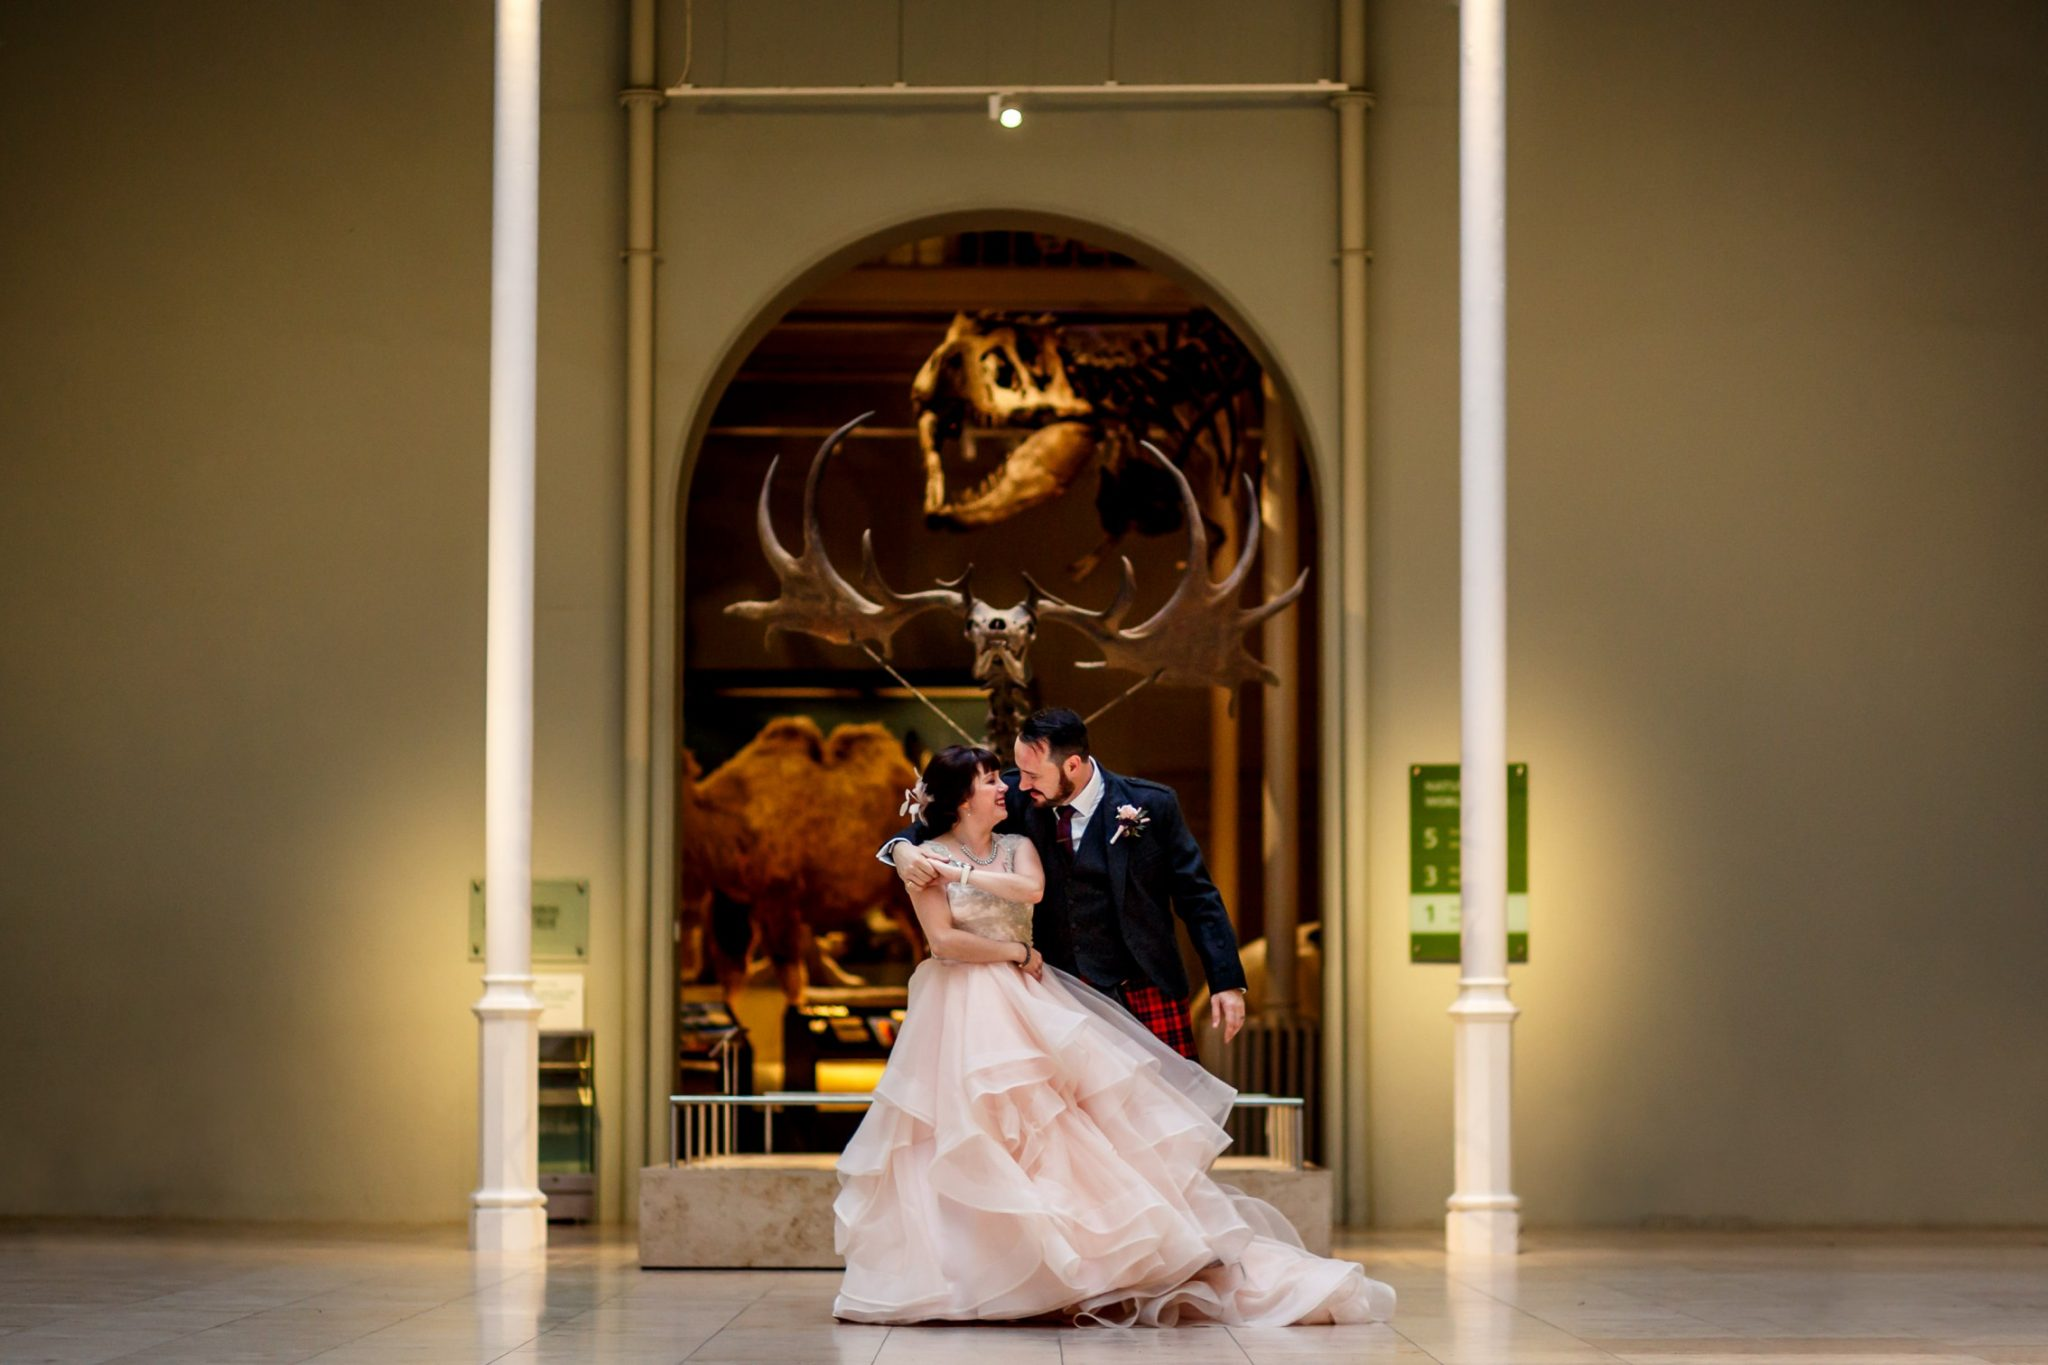 Unique Wedding Venues- Unconventional Wedding- Lina & Tom Photography- Wedding Photos by Fossils in museum